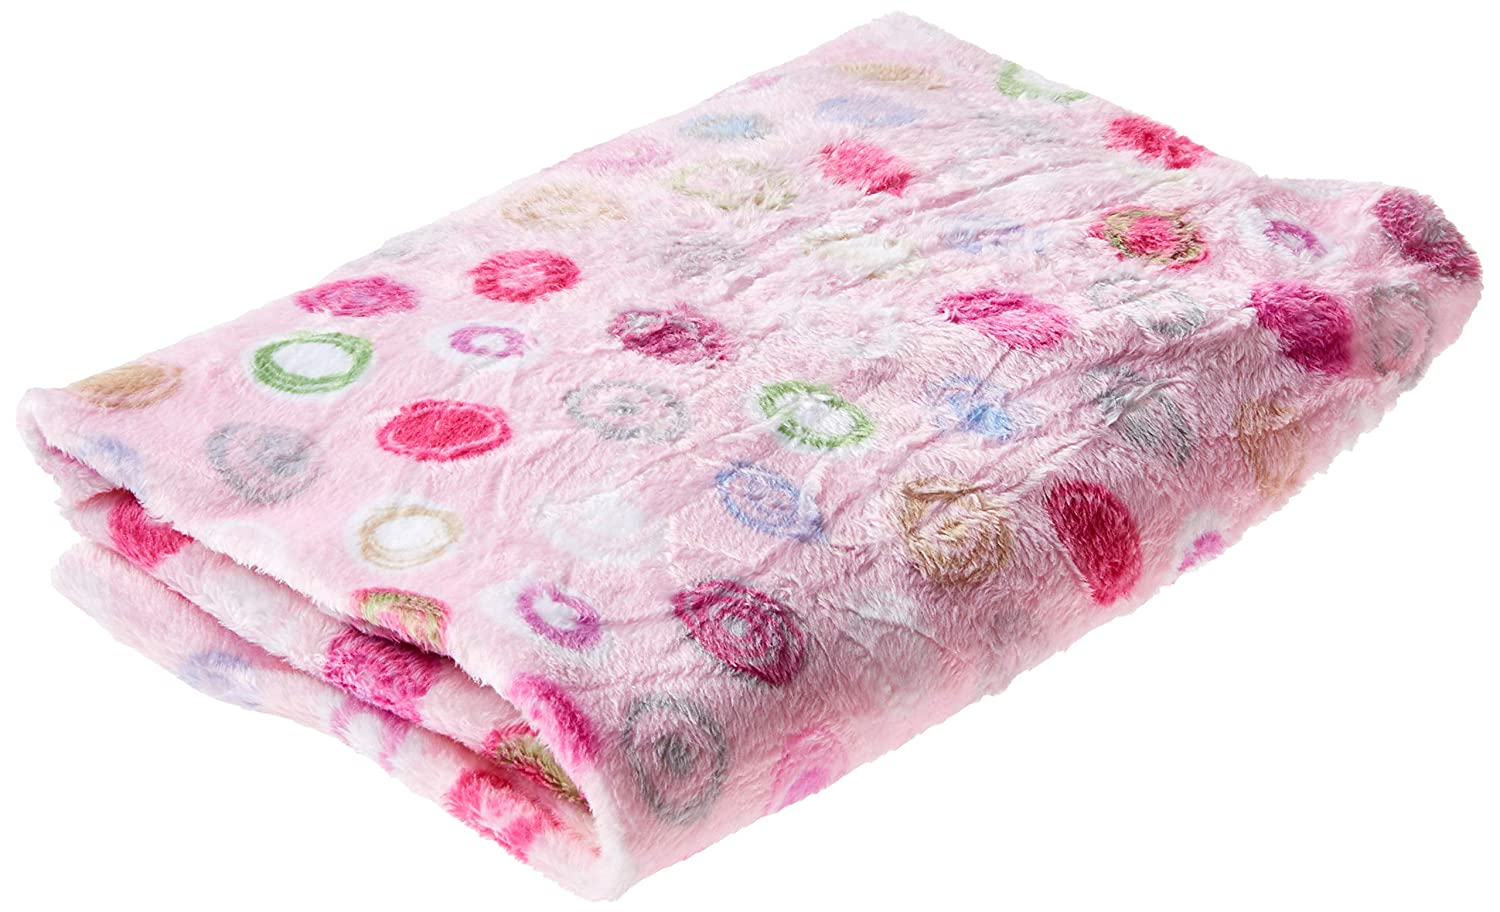 Summer Ultra Plush Changing Pad Cover, Pink Swirl